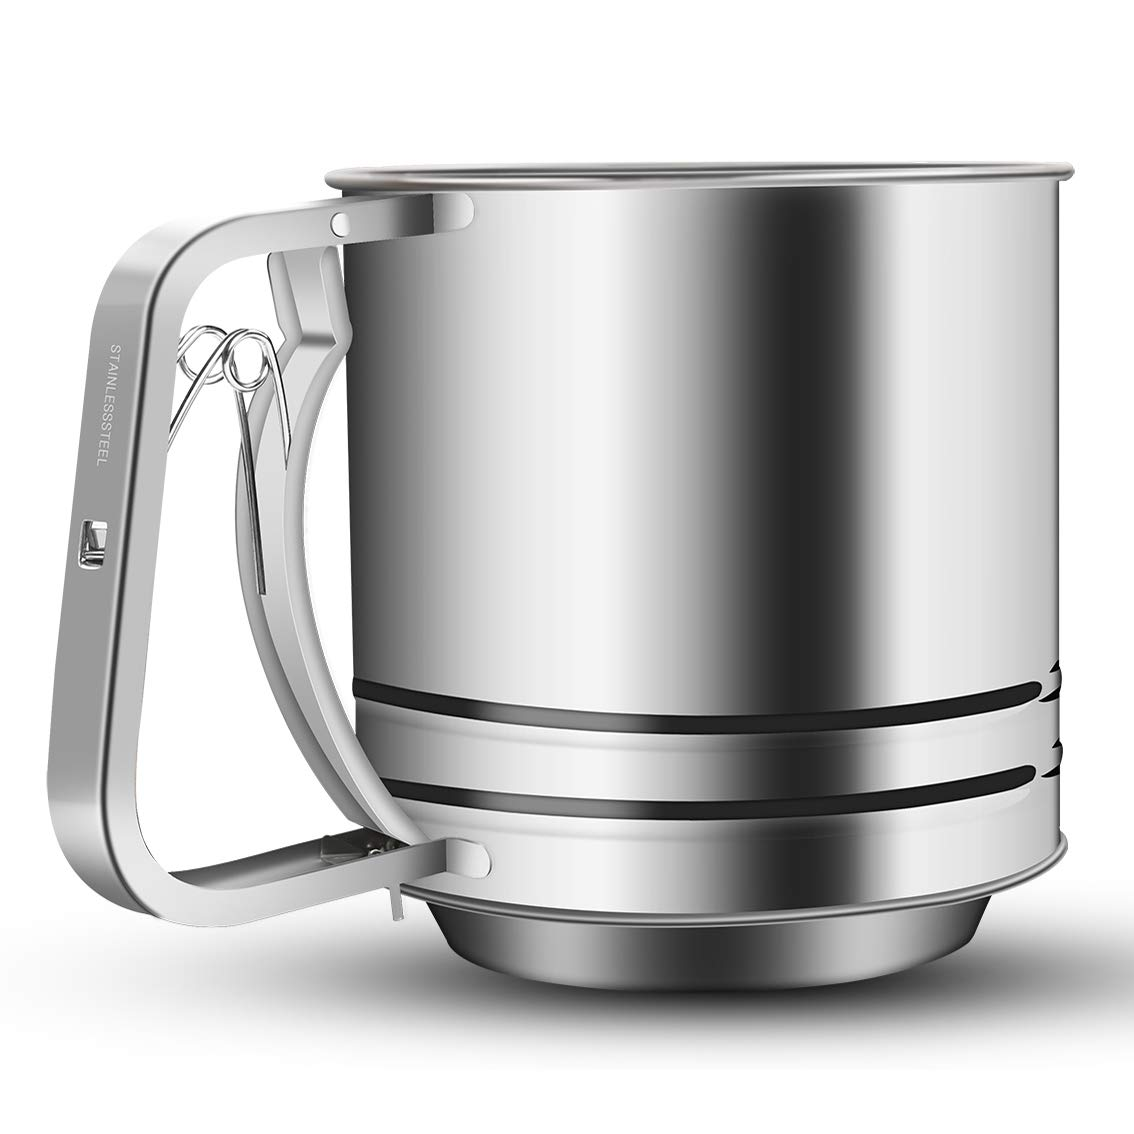 NPYPQ Stainless Steel Flour Sifter Large Baking Sieve Cup for Powdered Sugar by NPYPQ